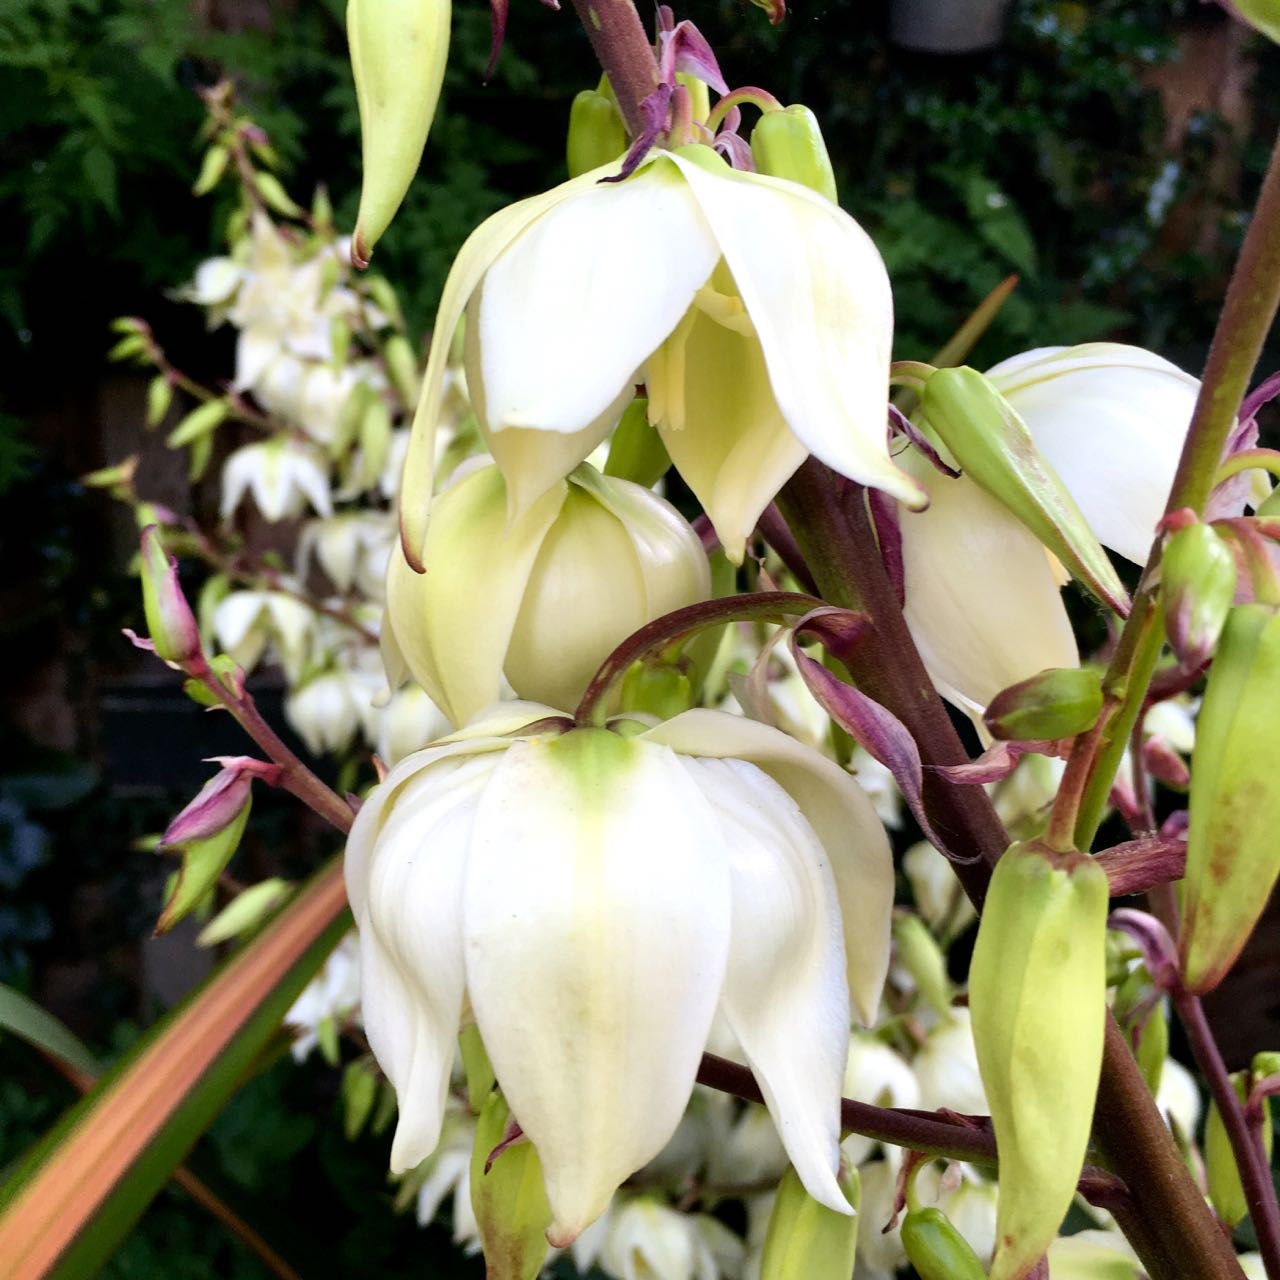 AND SUDDENLY THE YUCCA WAS IN FULL FLOWER